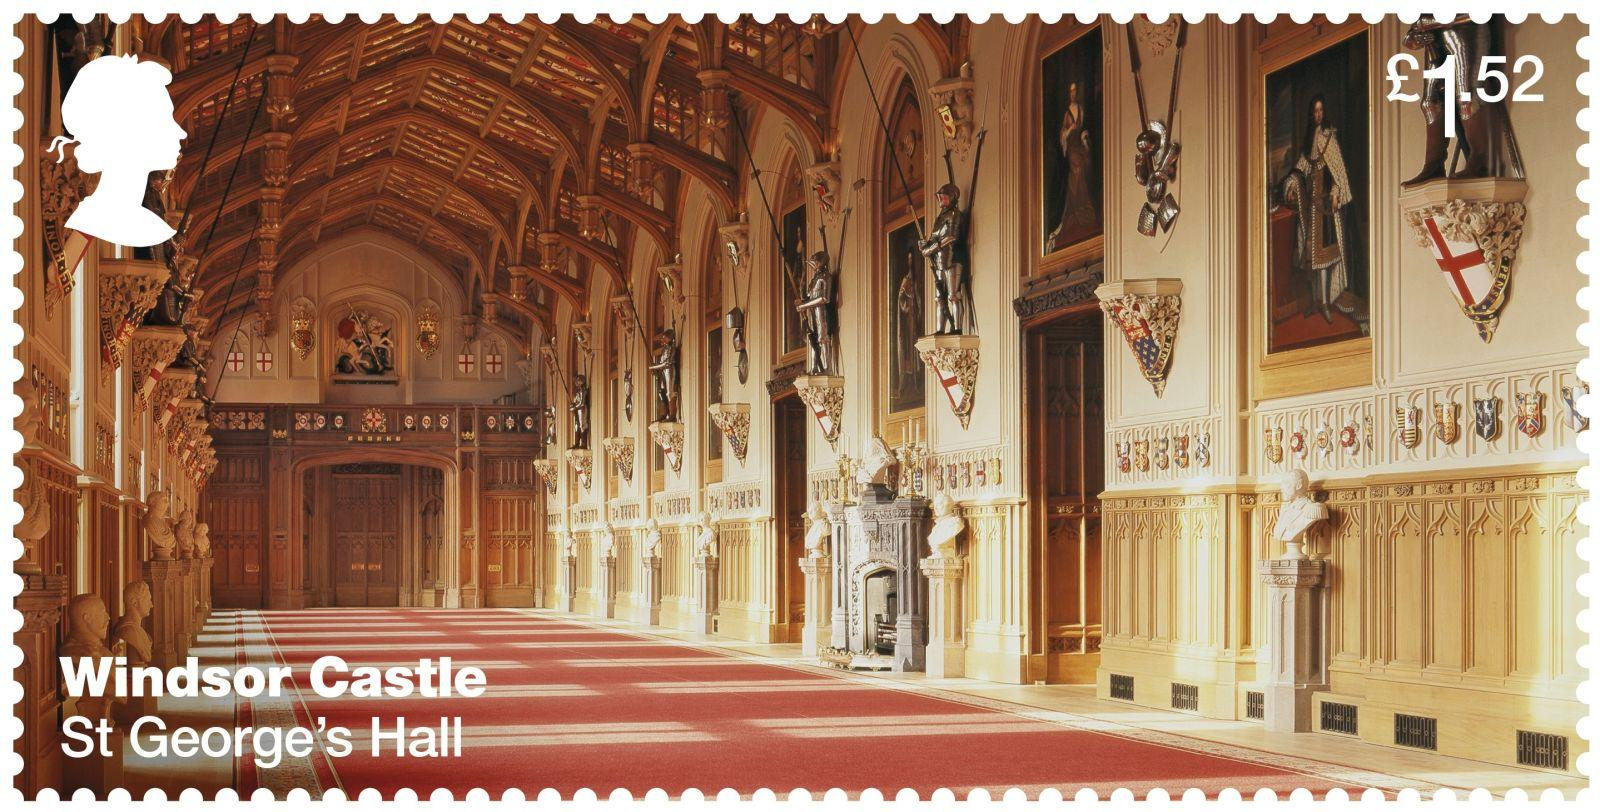 Windsor_Castle_on_Royal_Mail_stamps06